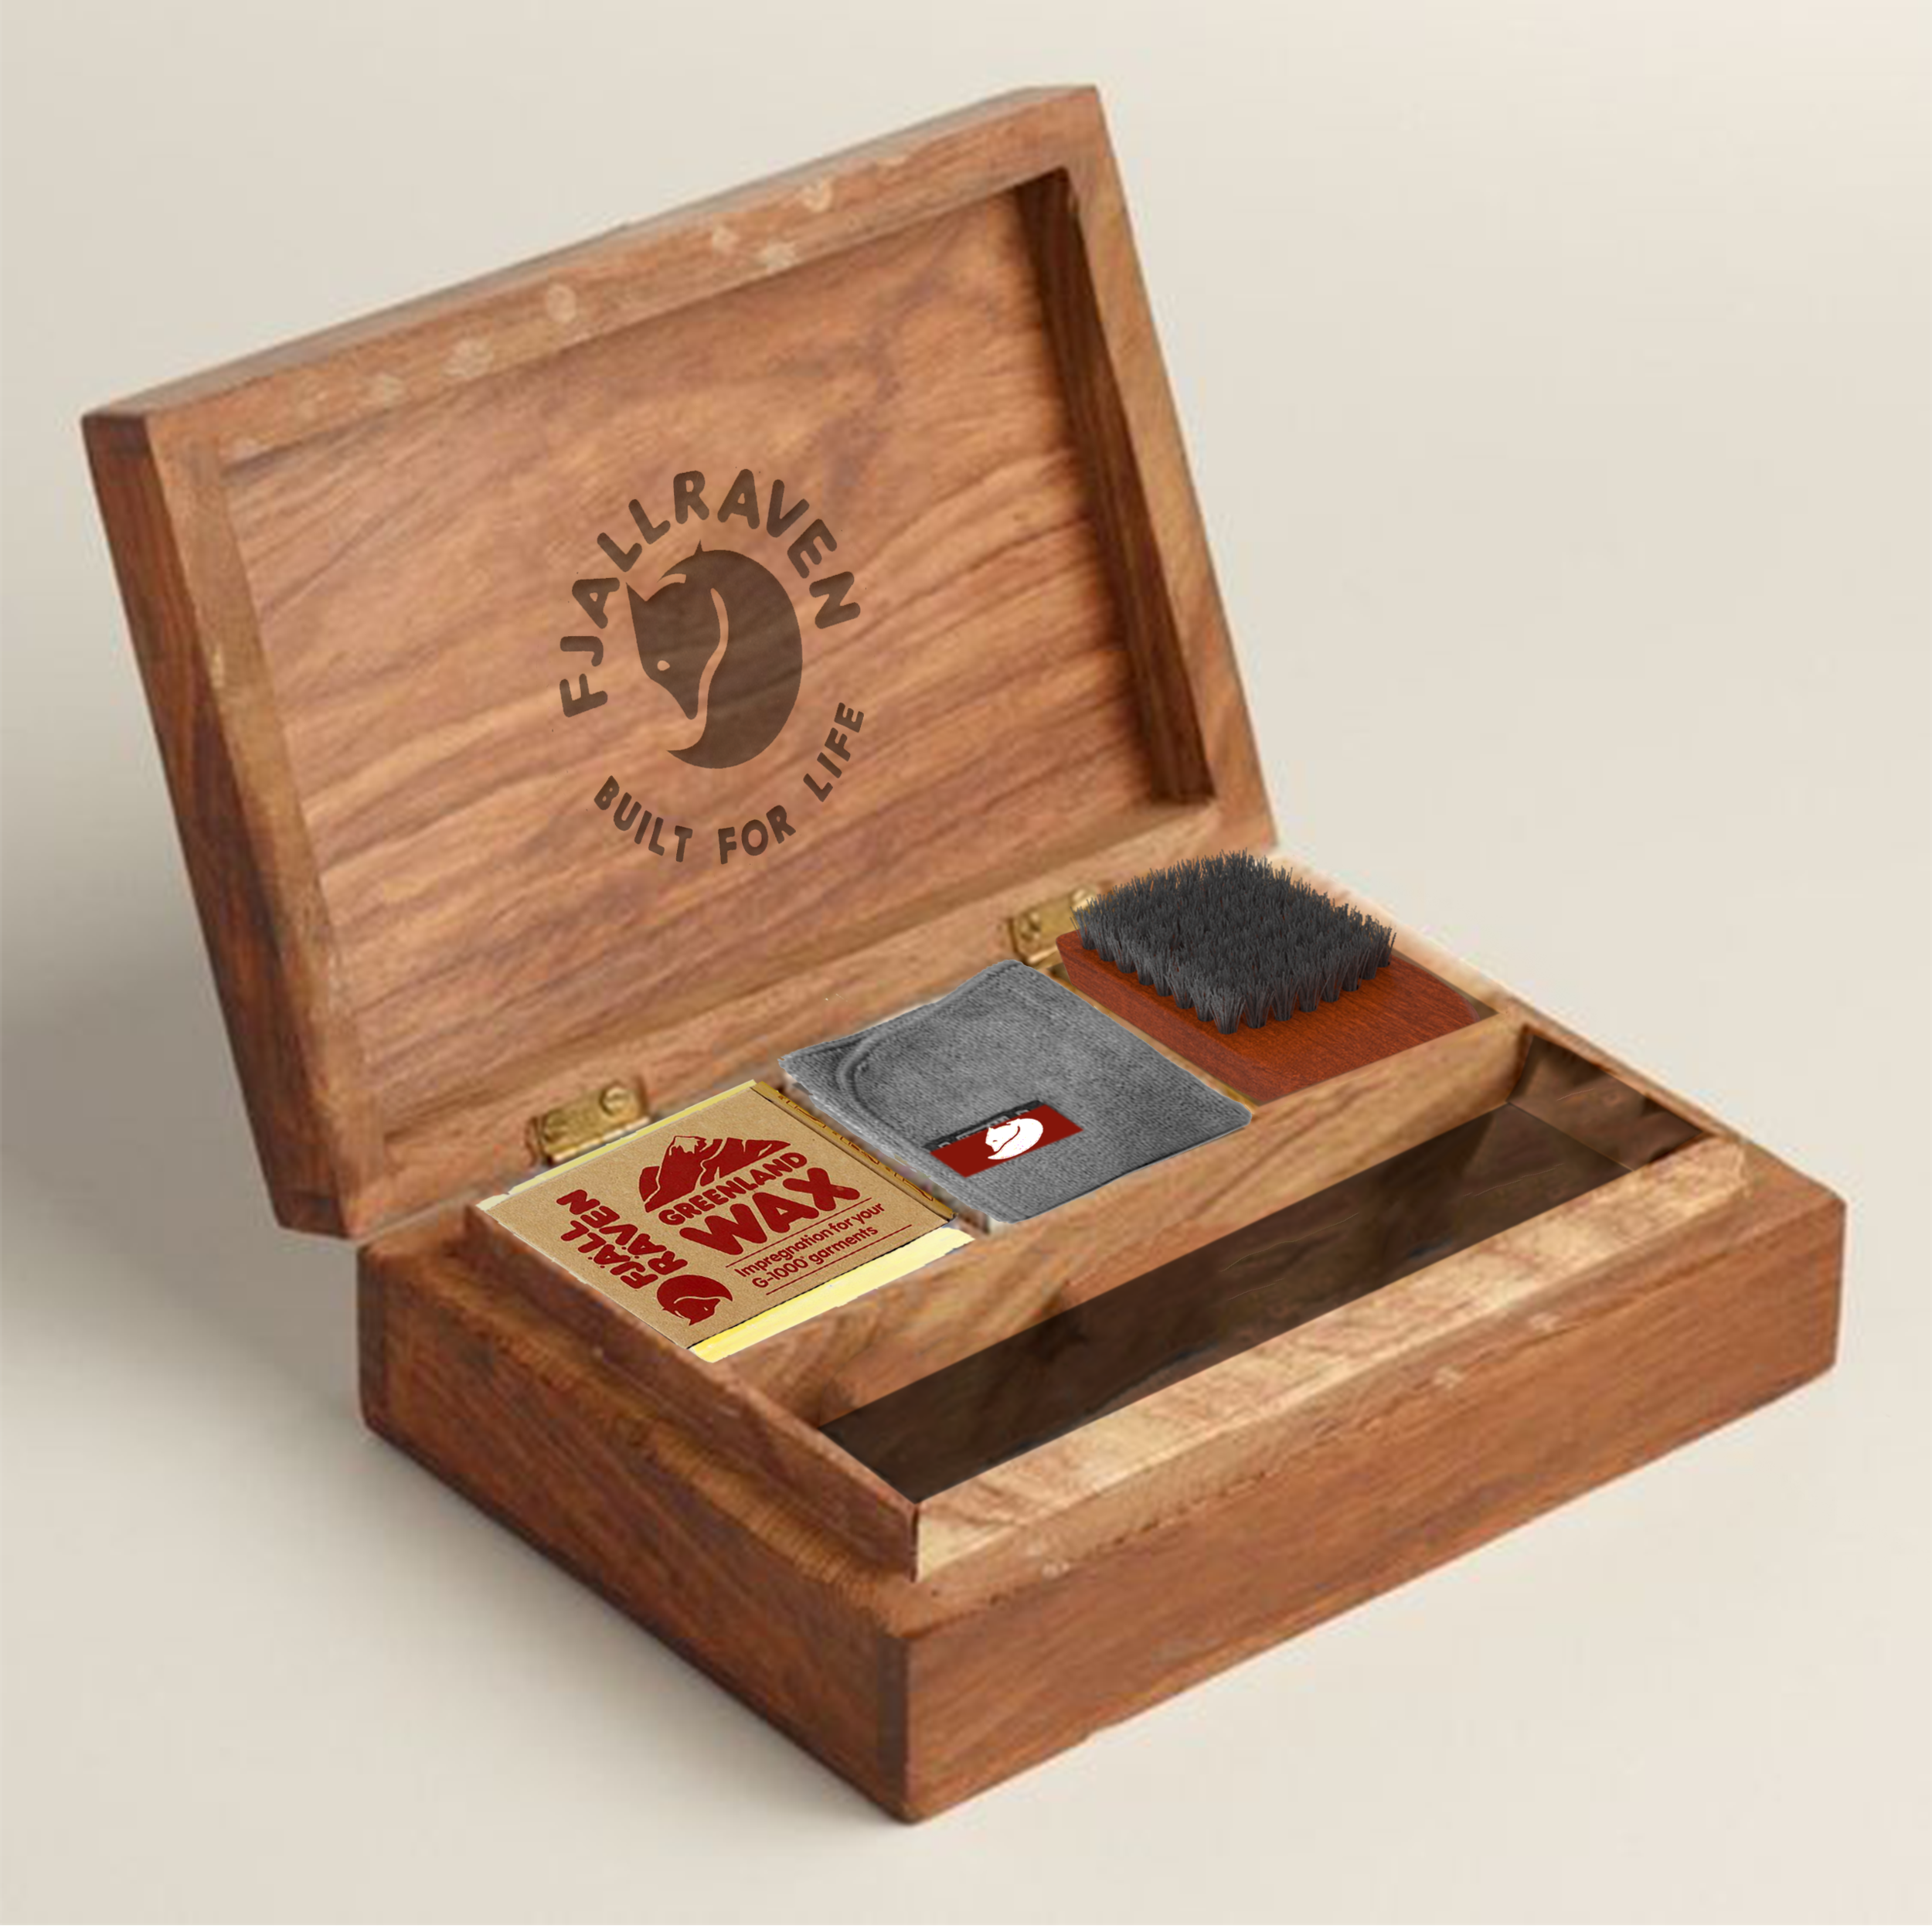 Care kit with Greenland Wax, cleaning cloth and brush to help maintain the life of the coat. The box doubles as a place to keep souvenirs from treks.